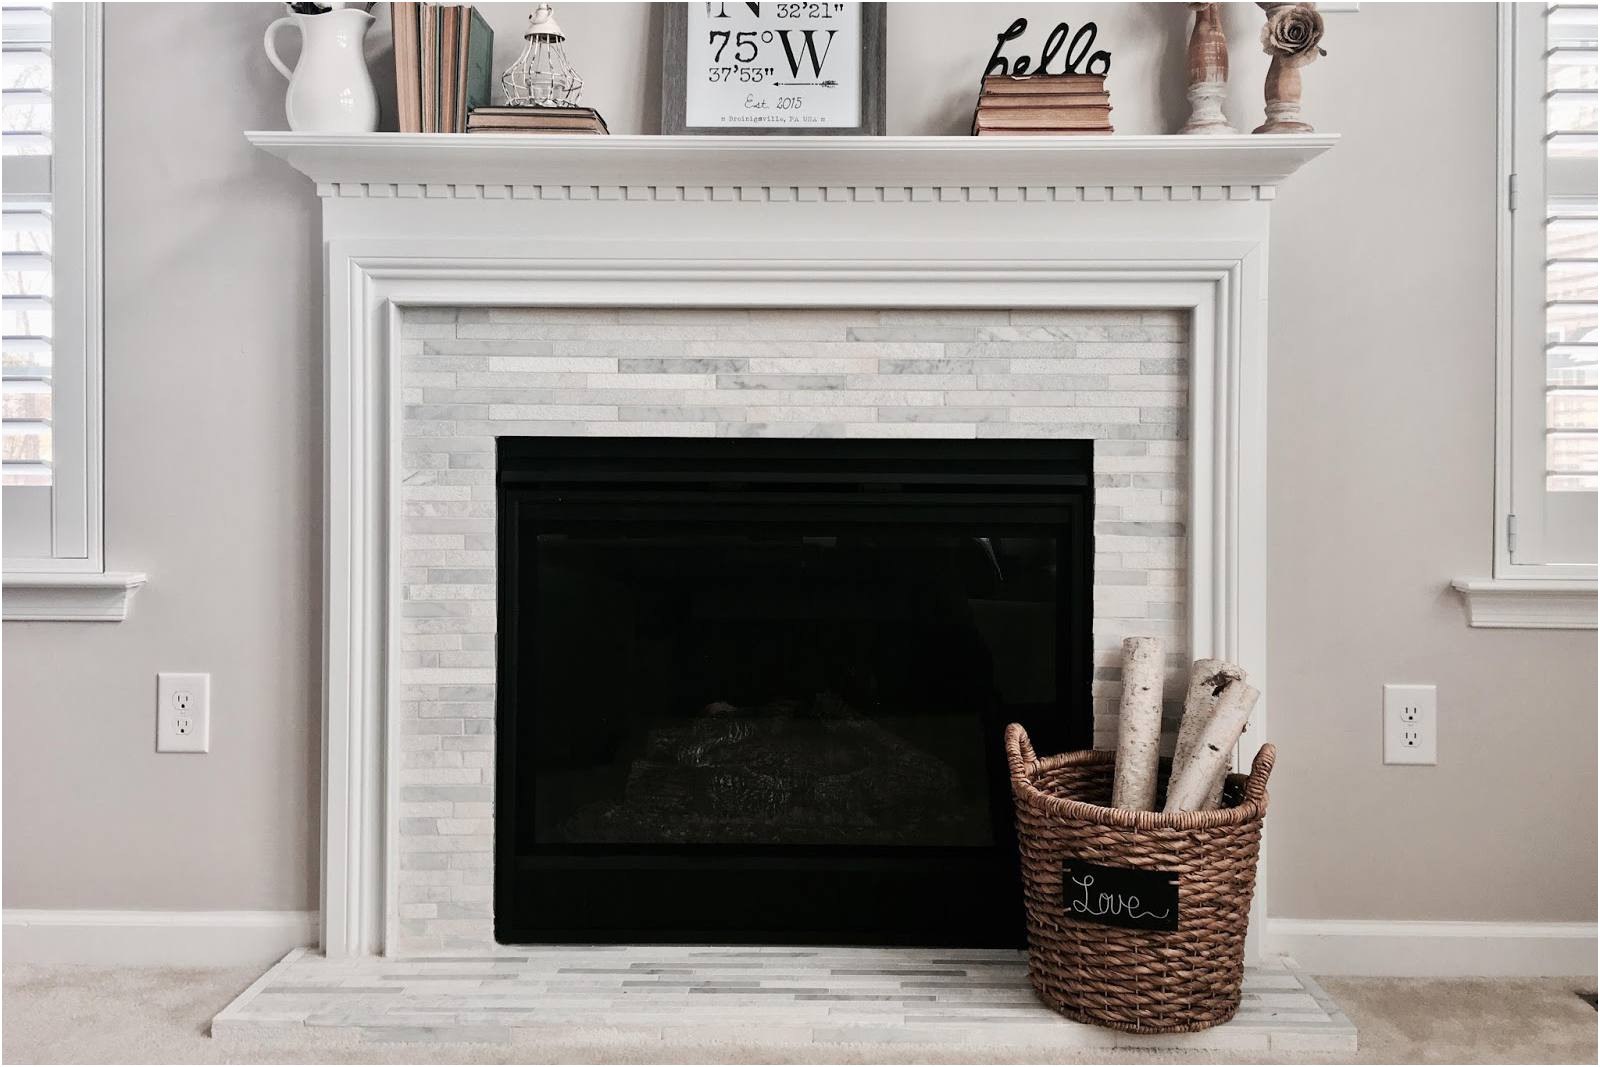 Luxury Tile Ideas for Around Fireplace